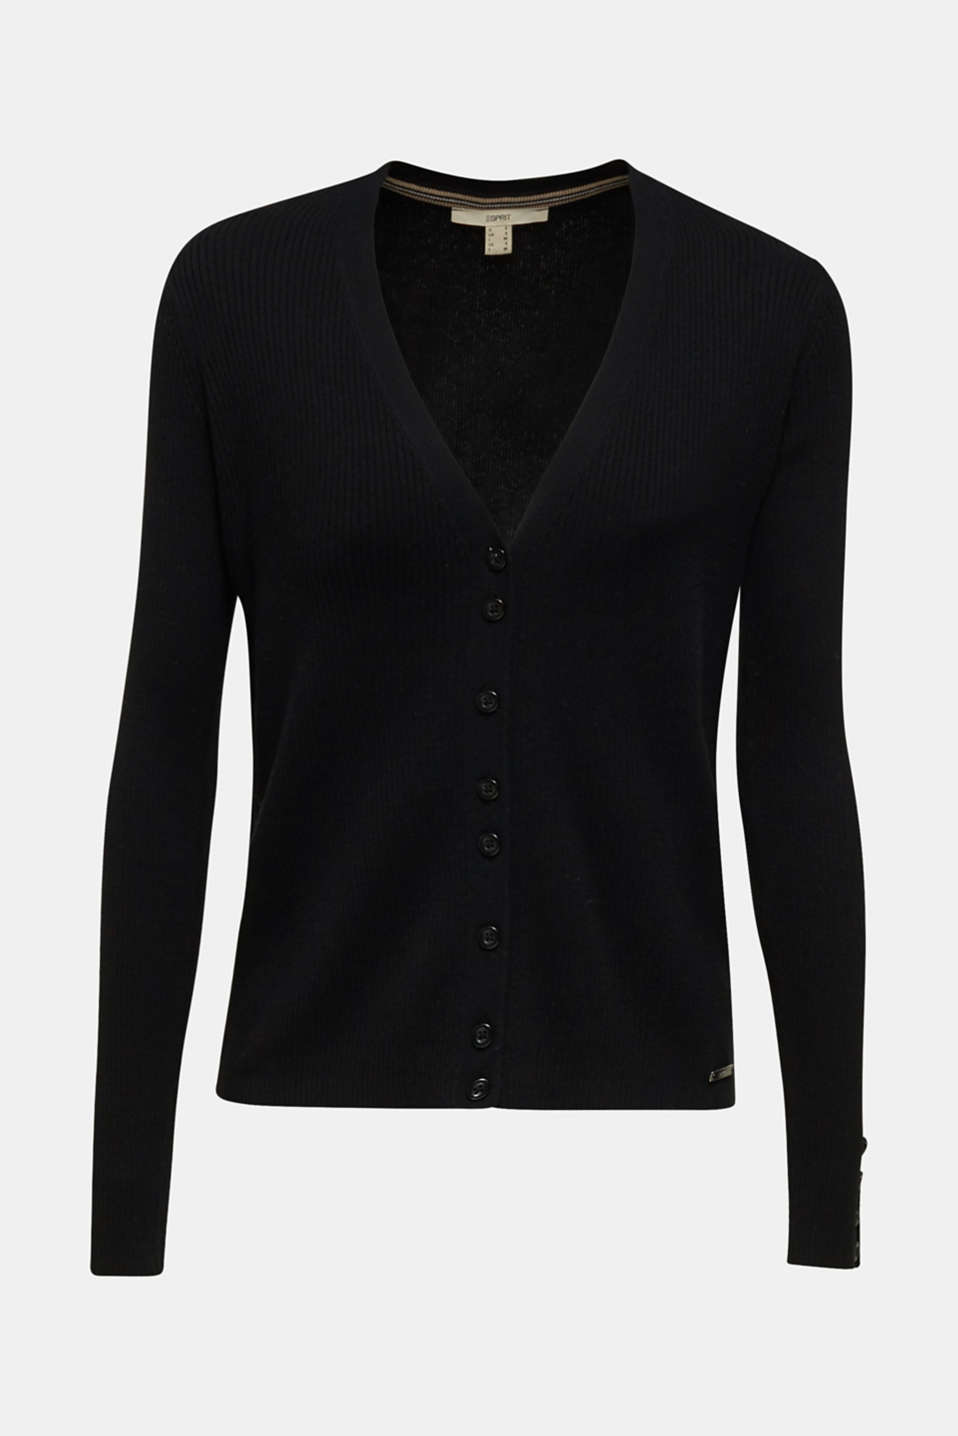 With silk: Ribbed knit cardigan, BLACK, detail image number 7